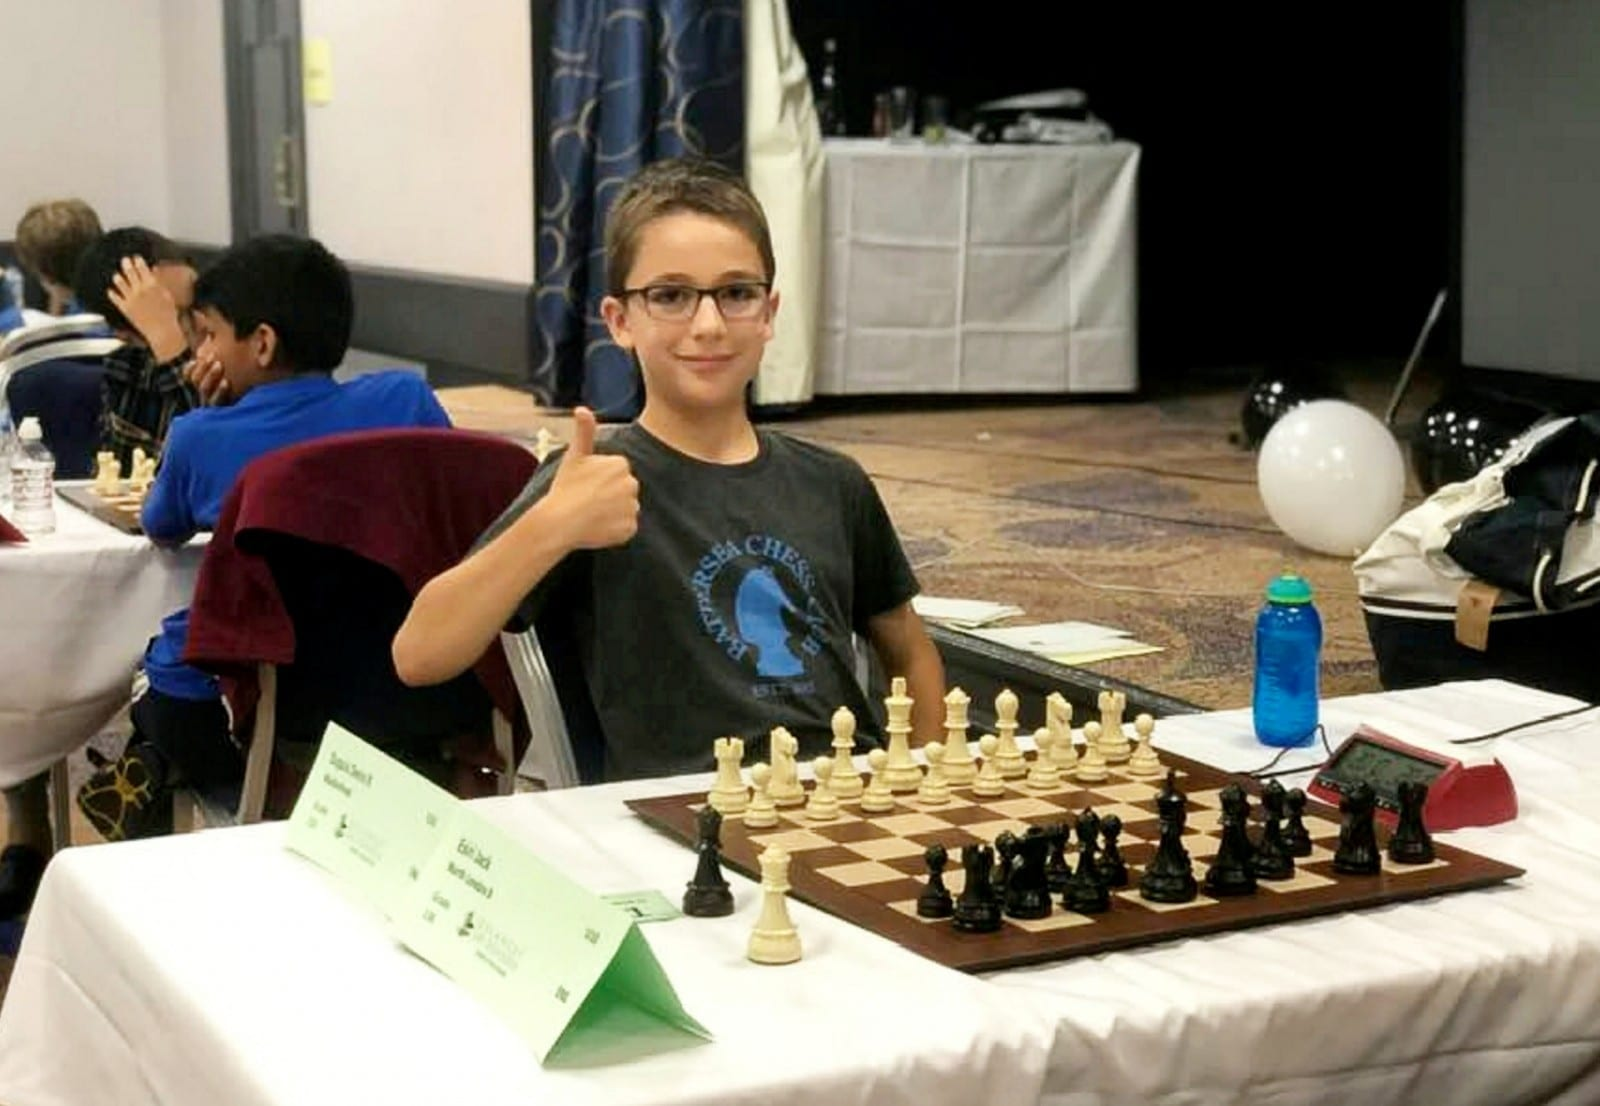 Schoolboy Is Hailed As The Next Grandmaster After Annihilating The Rest Of The Field In The World's Largest Chess Tournament